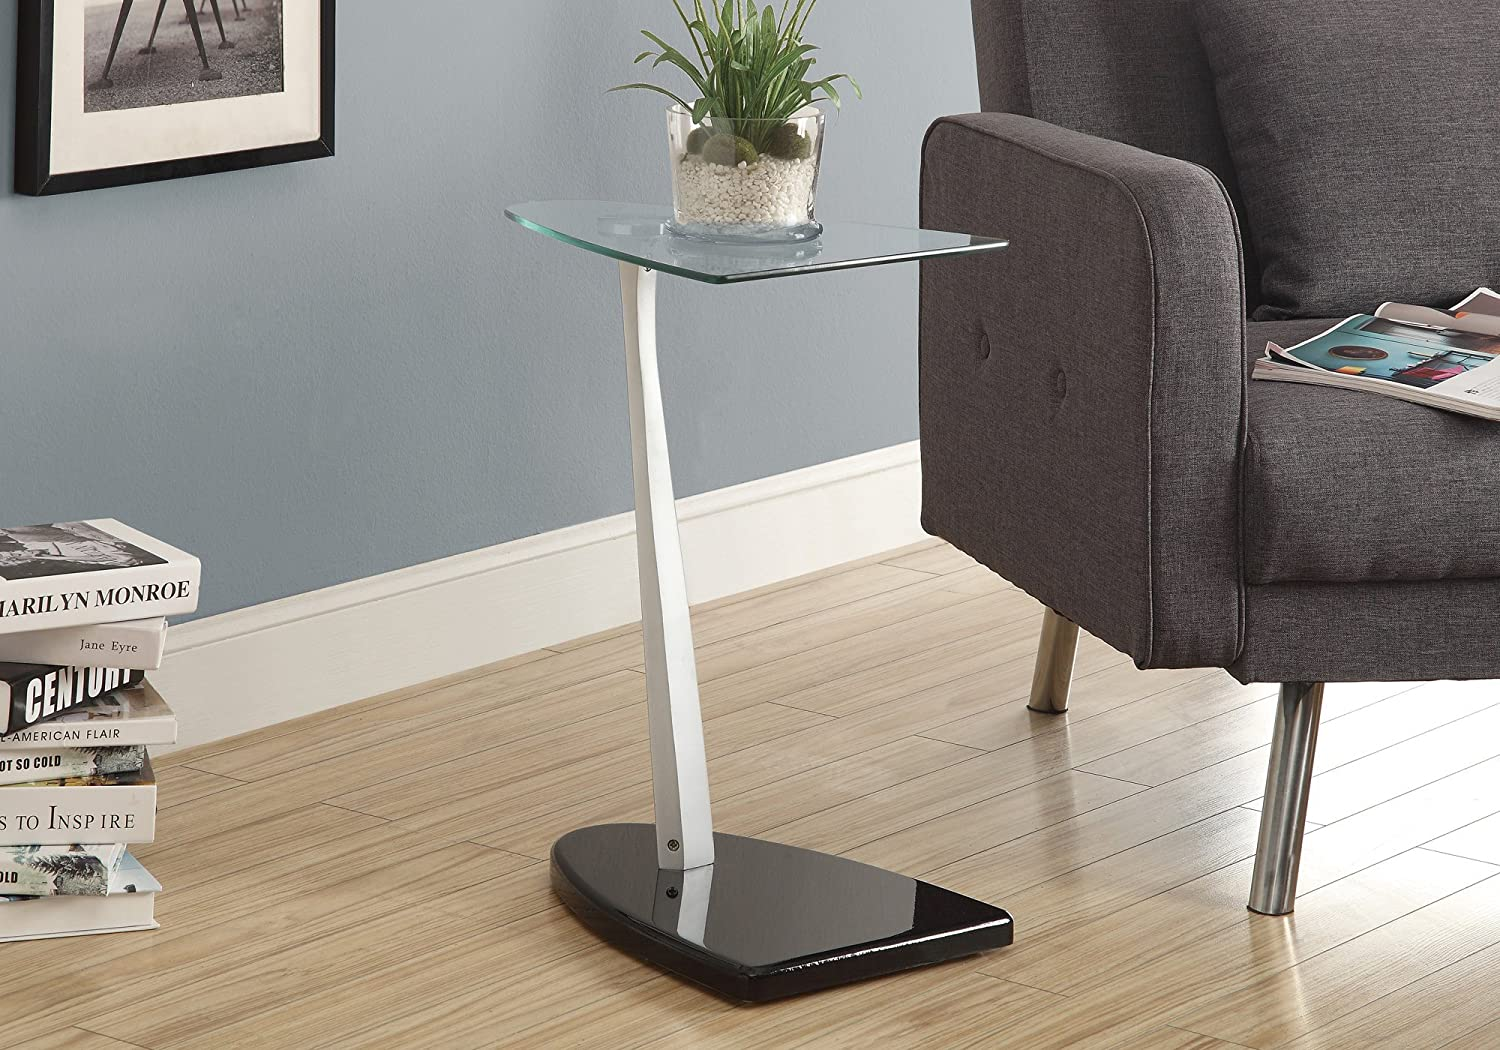 Monarch Free shipping anywhere in the nation overseas Specialties Accent table top glass 24